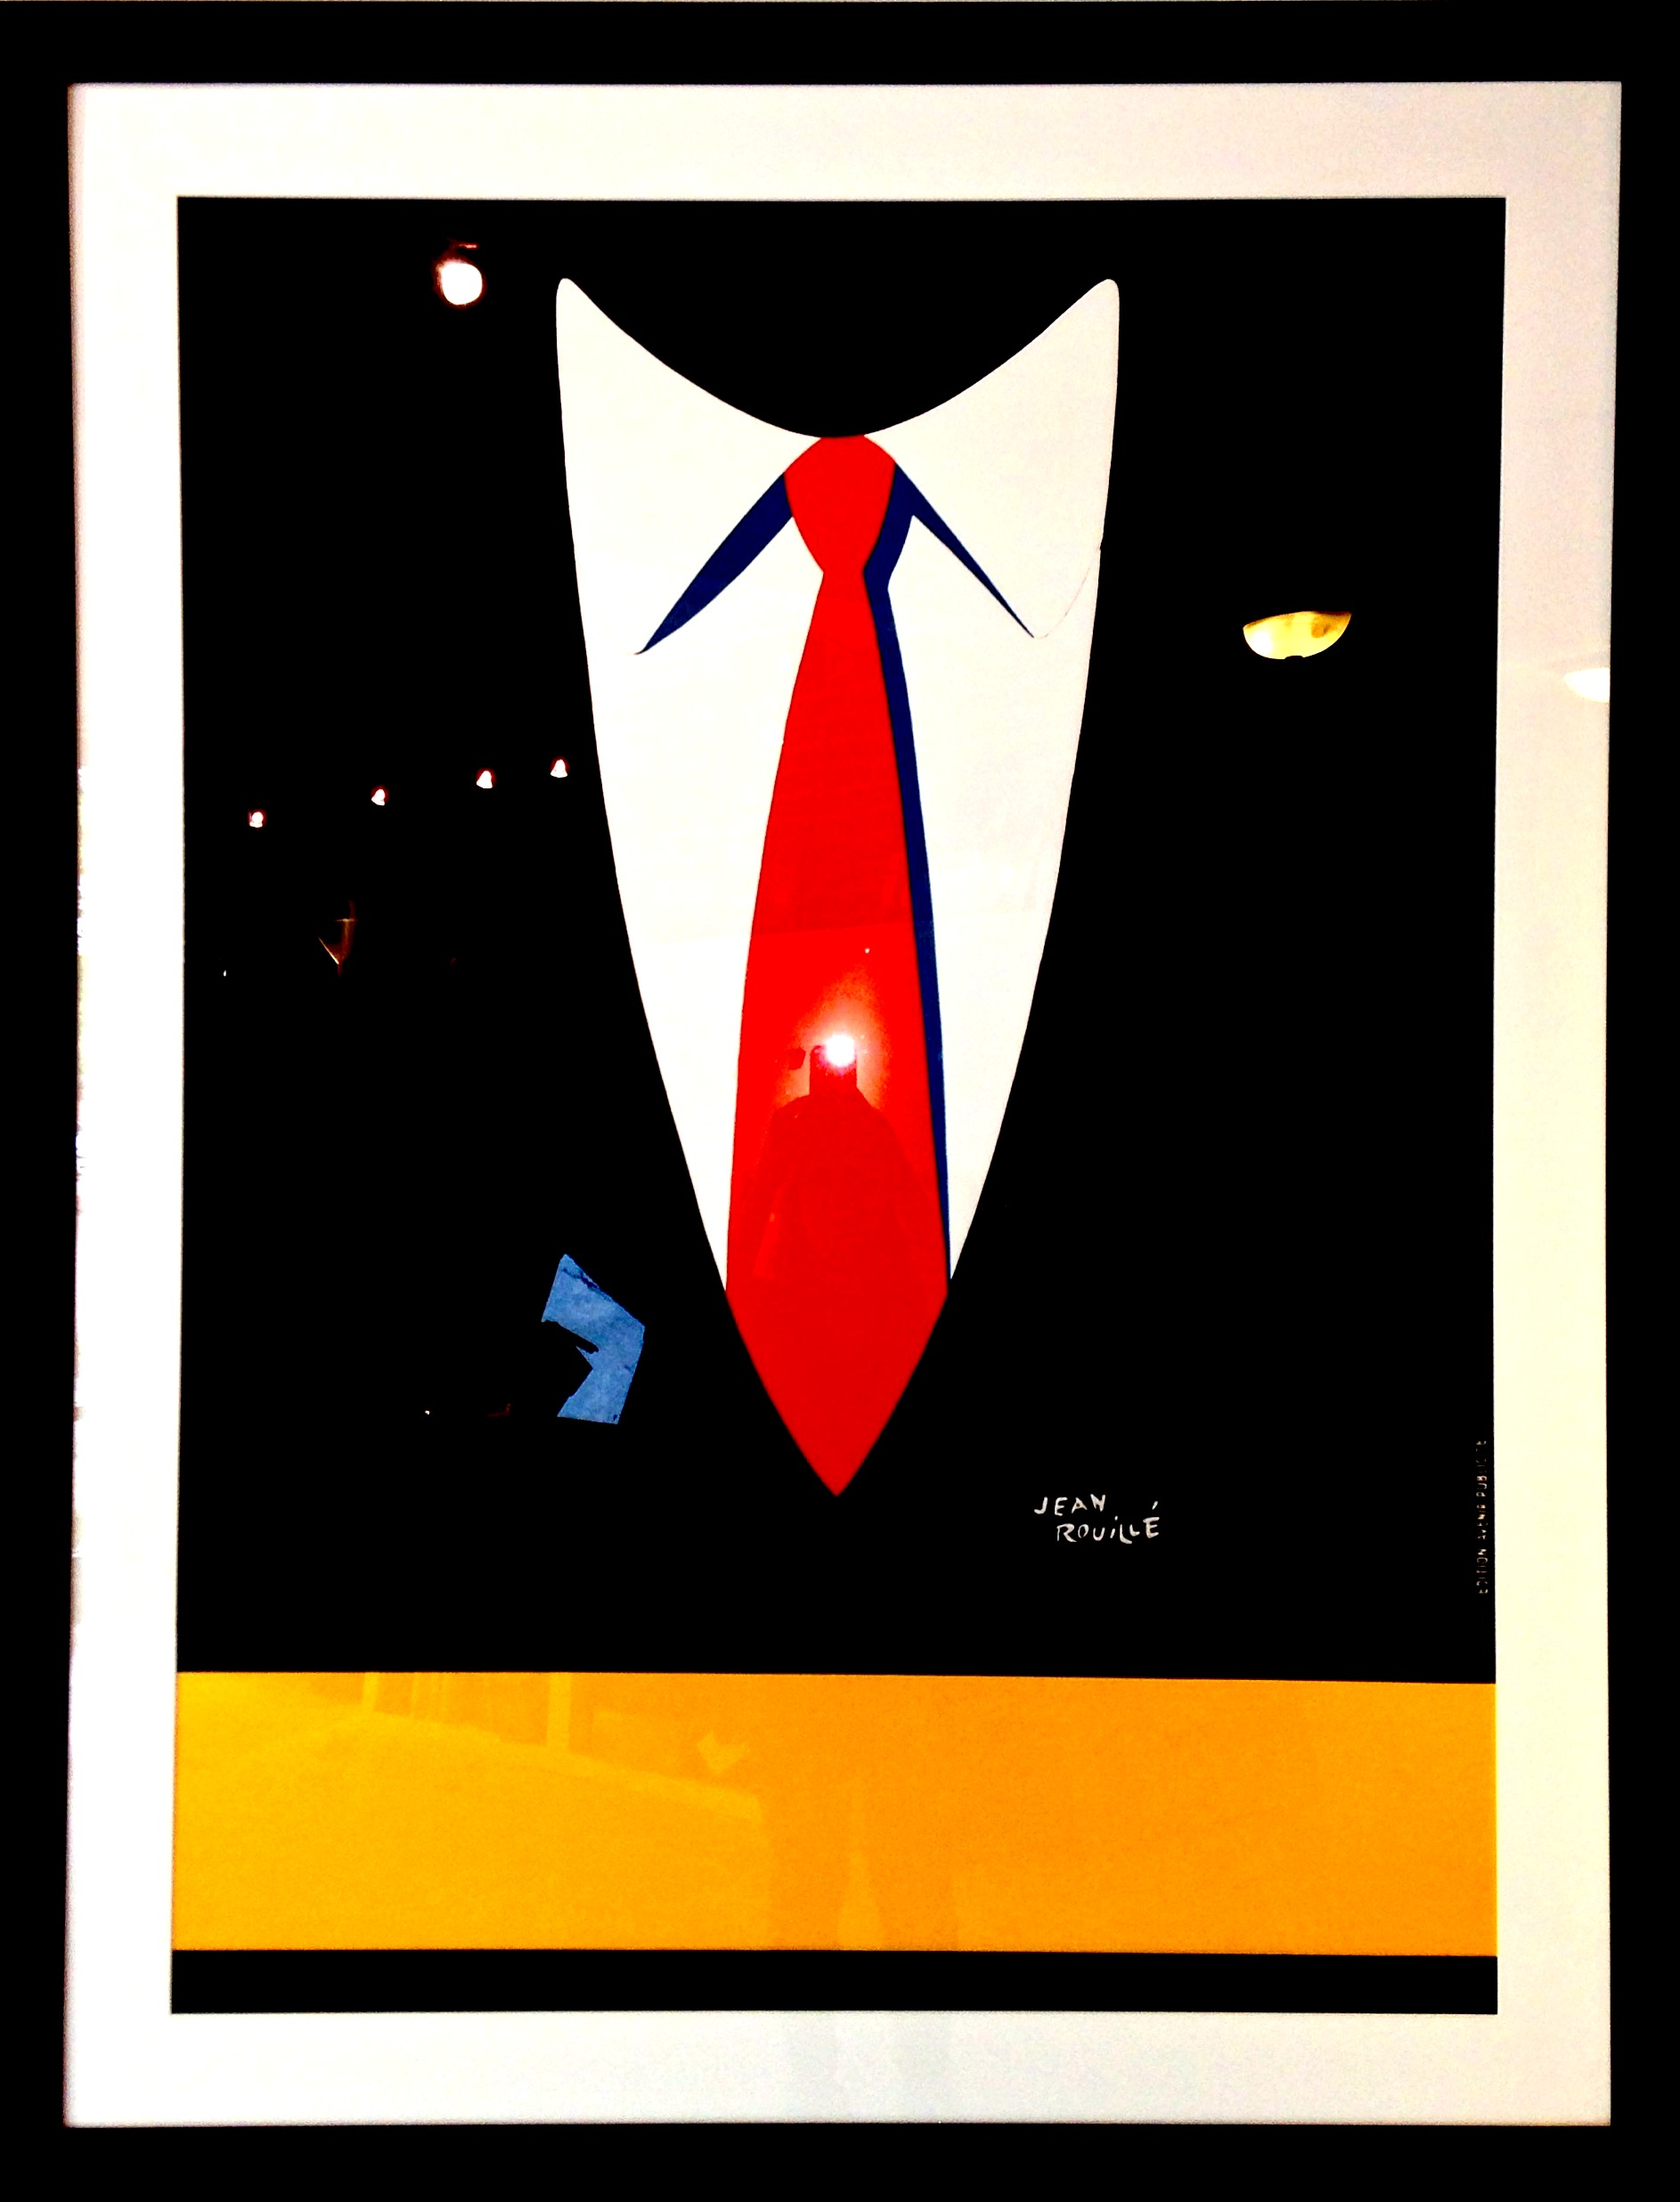 Fine Art Serigraph; available for purchase